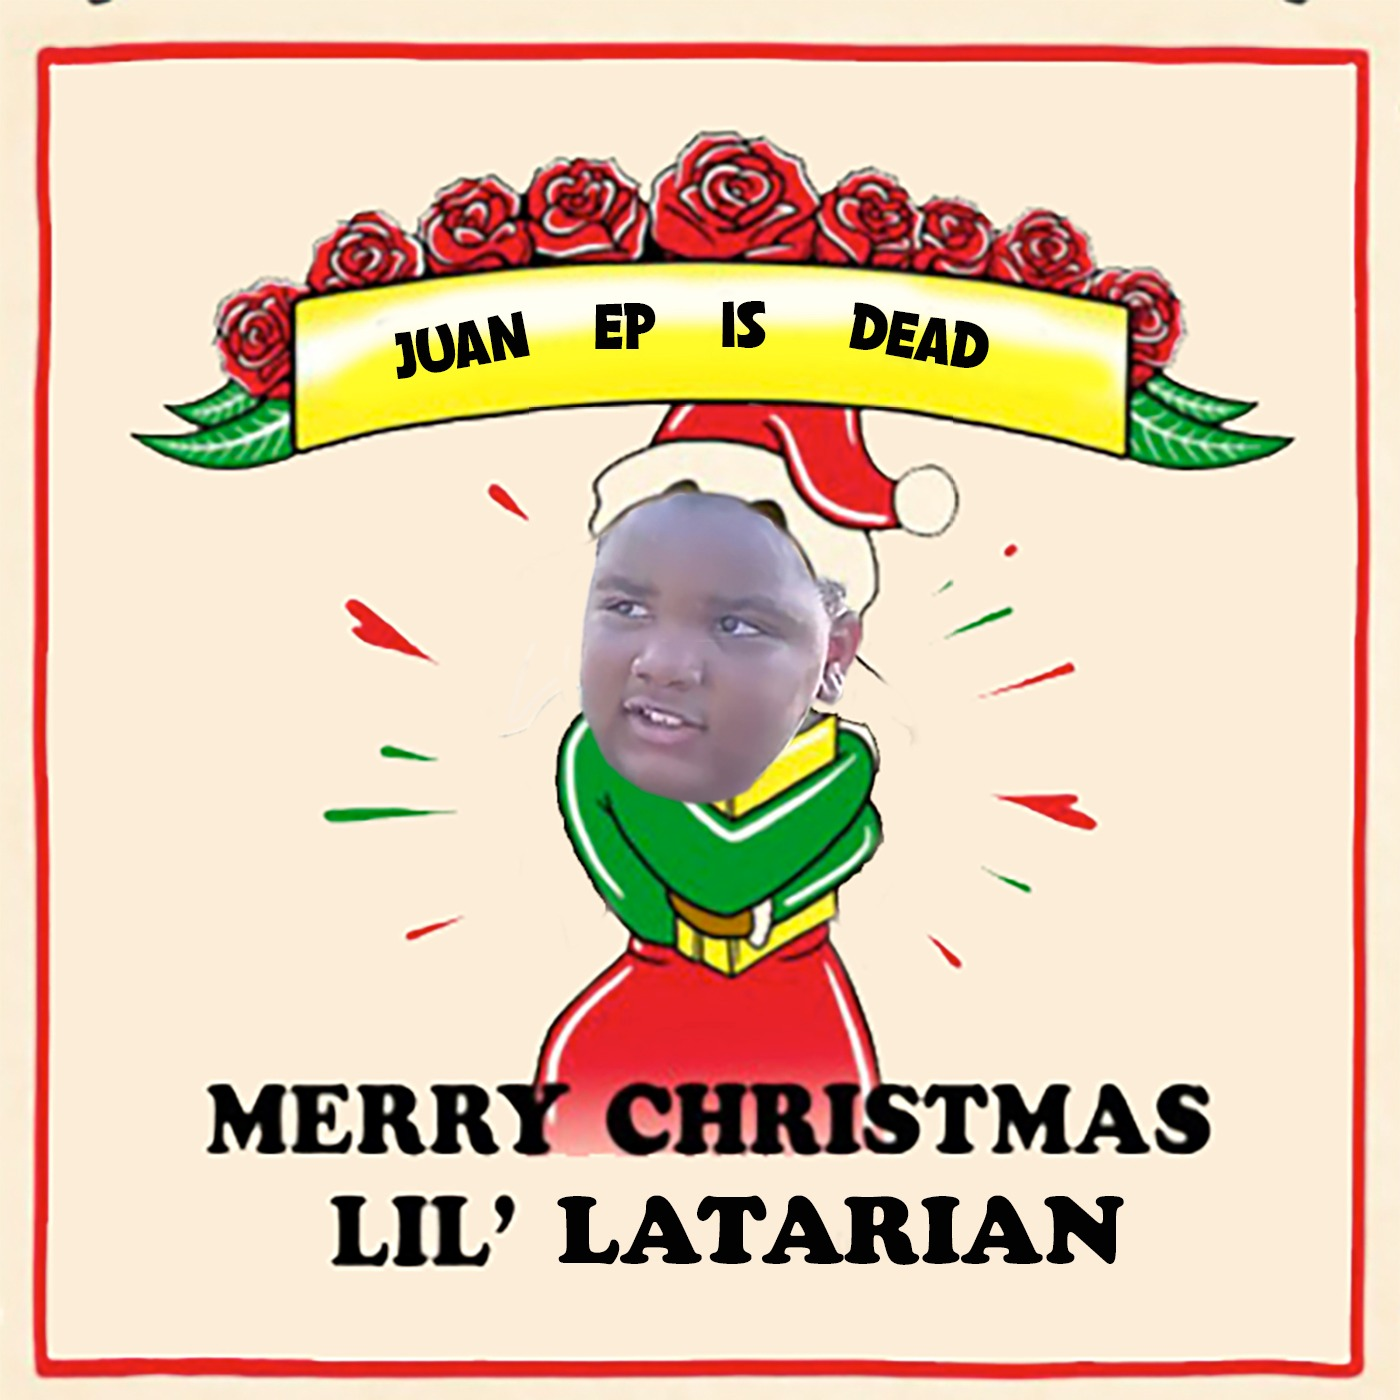 Merry Christmas Lil' Latarian